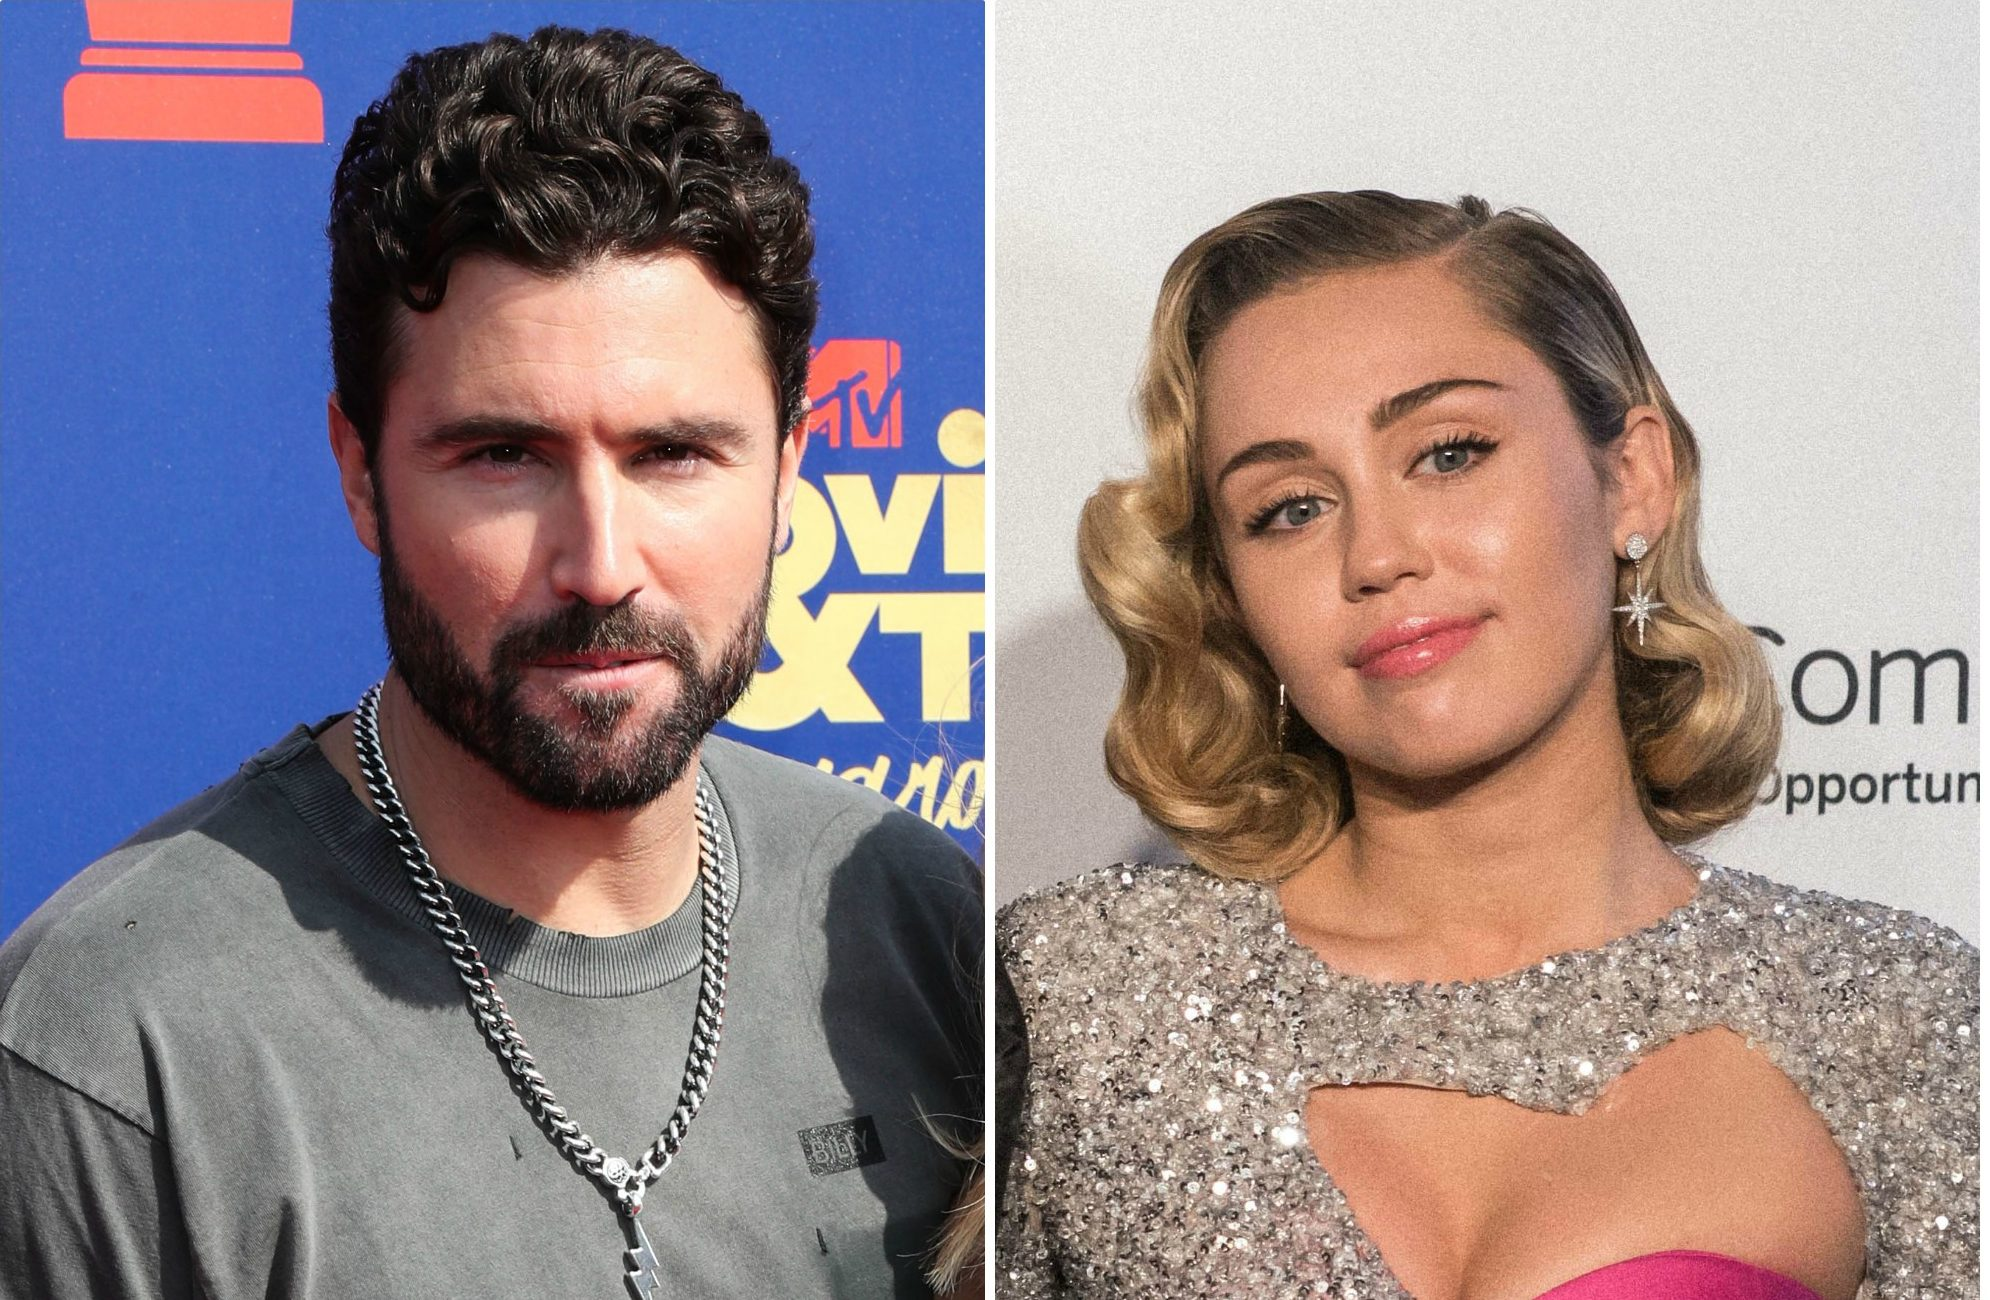 Brody Jenner and Miley Cyrus side-by-side